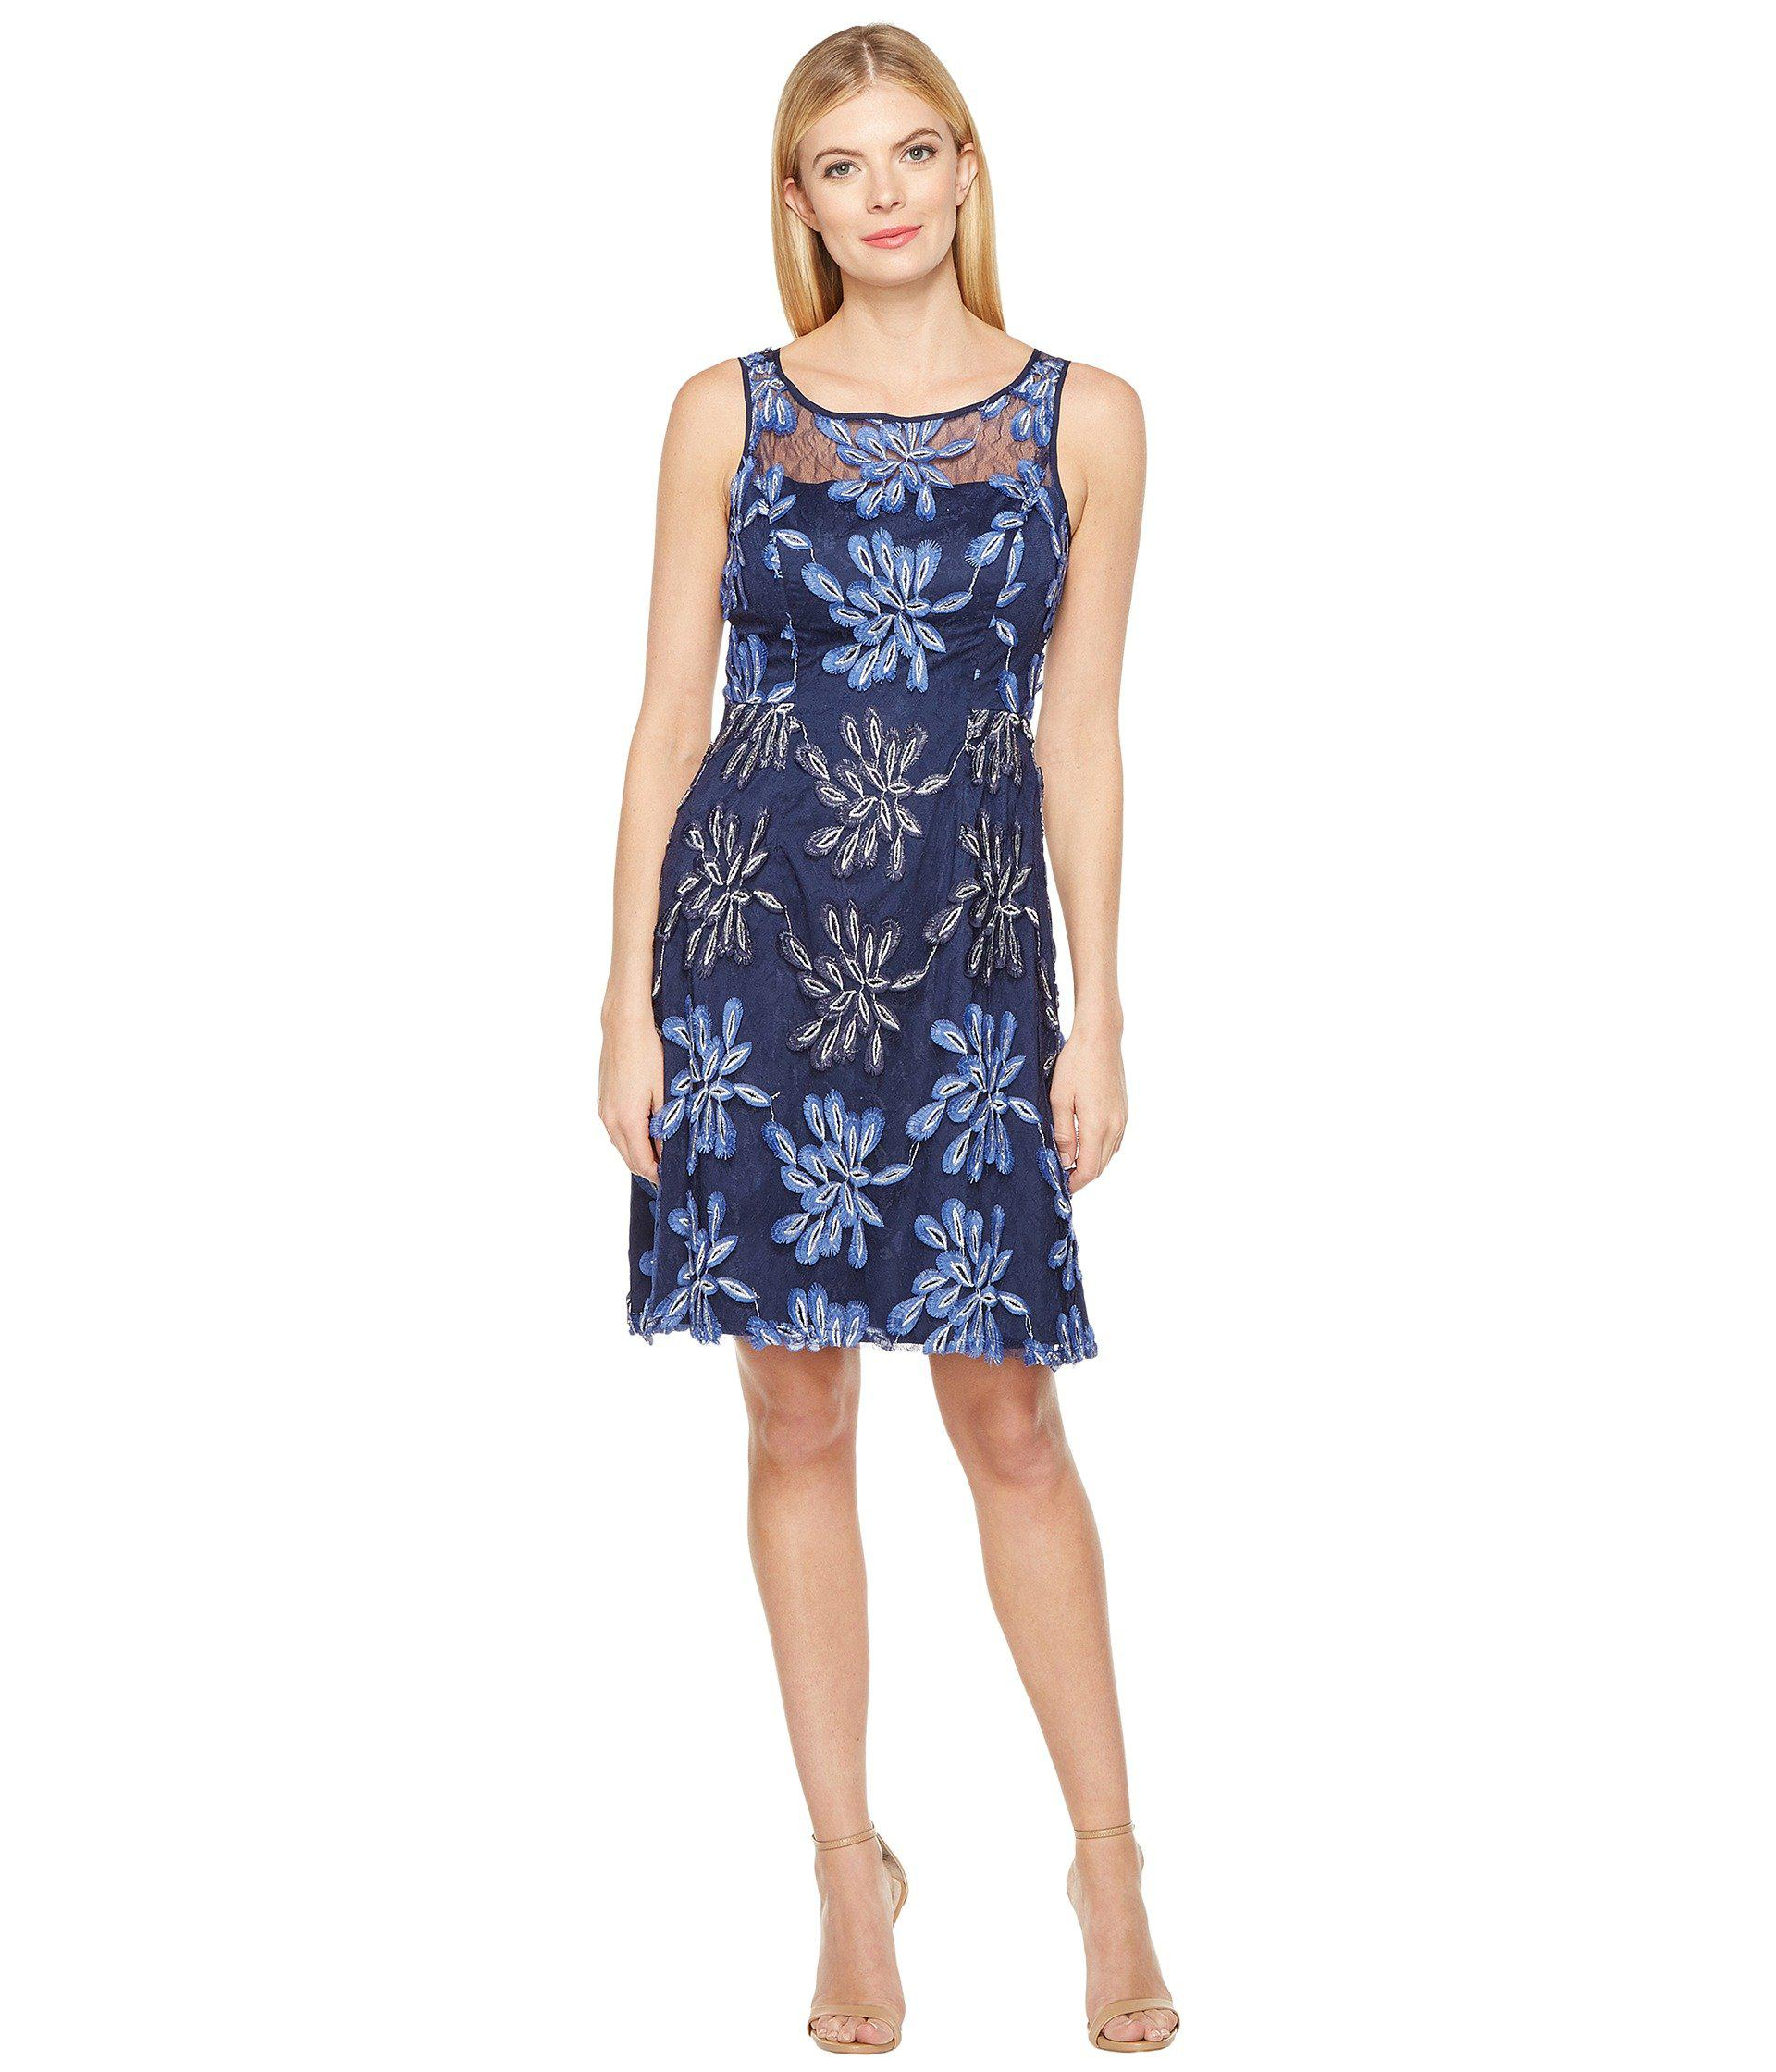 c52e1b37 Adrianna Papell Split Neck Fit And Flare Dress W Pleated Skirt – DACC